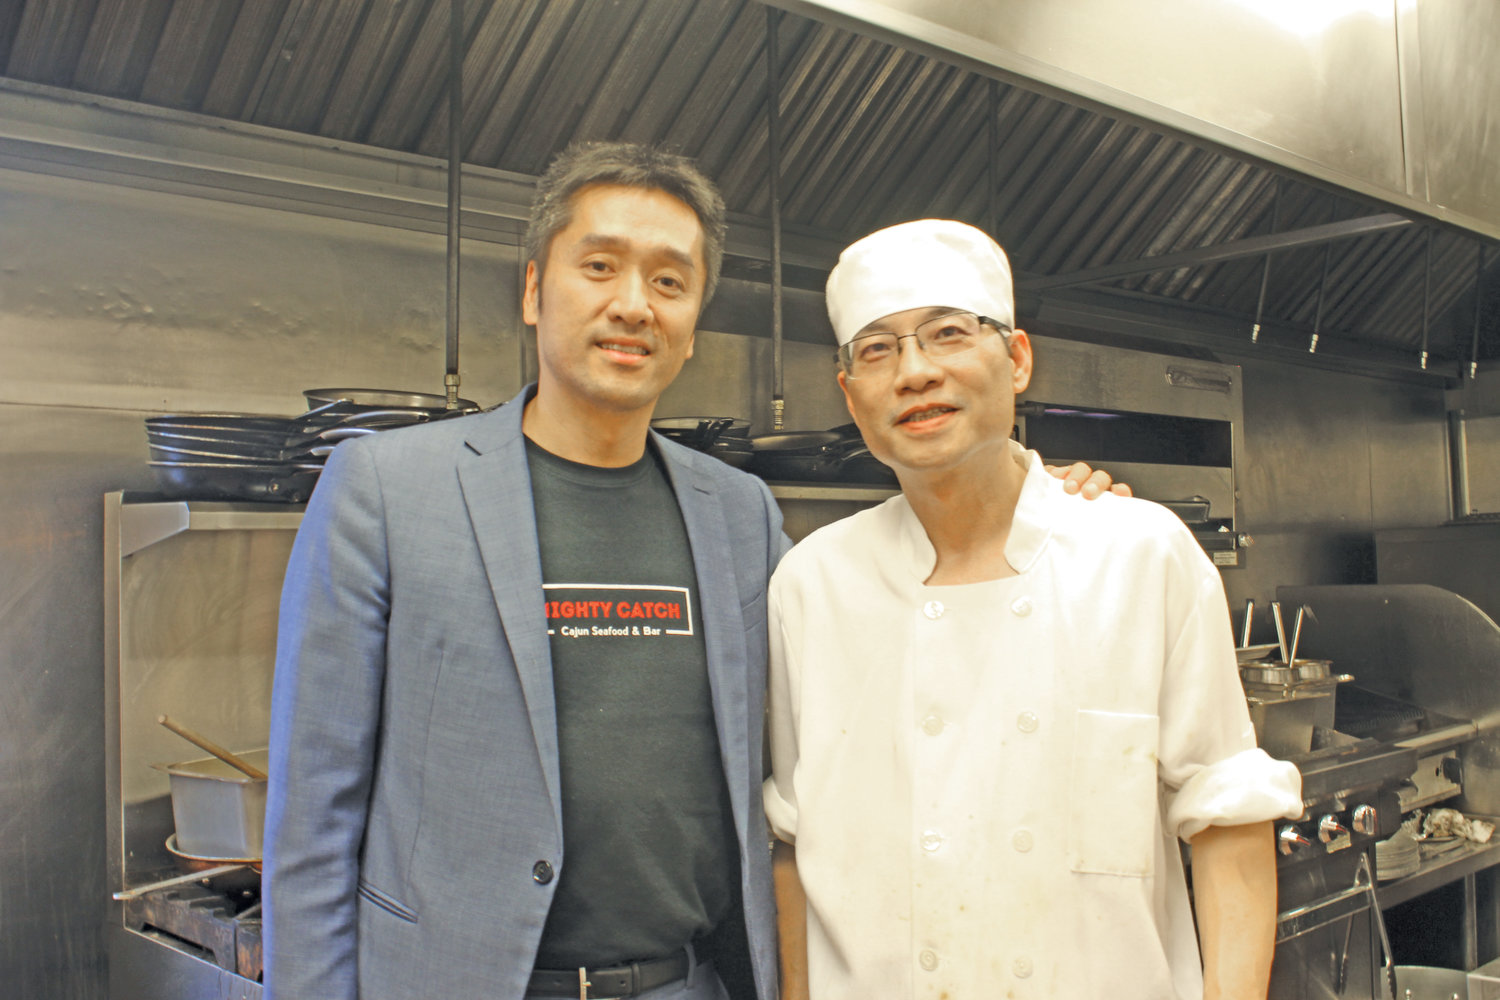 Tom Lau, left, and Wen Chen are the owners of Mighty Catch, a brand new restaurant on Long Beach Road in Oceanside.